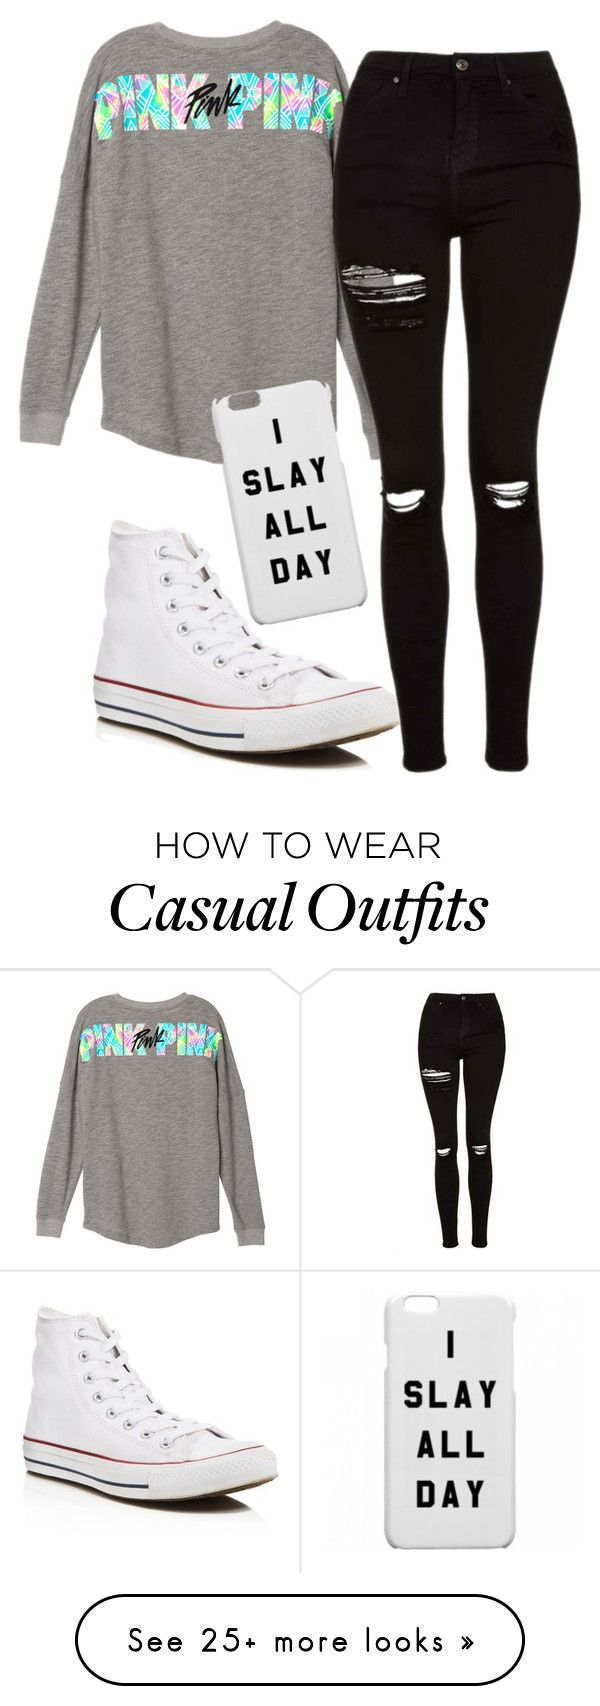 """Casual Chic "" by deshae27 on Polyvore featuring Topshop and Converse"